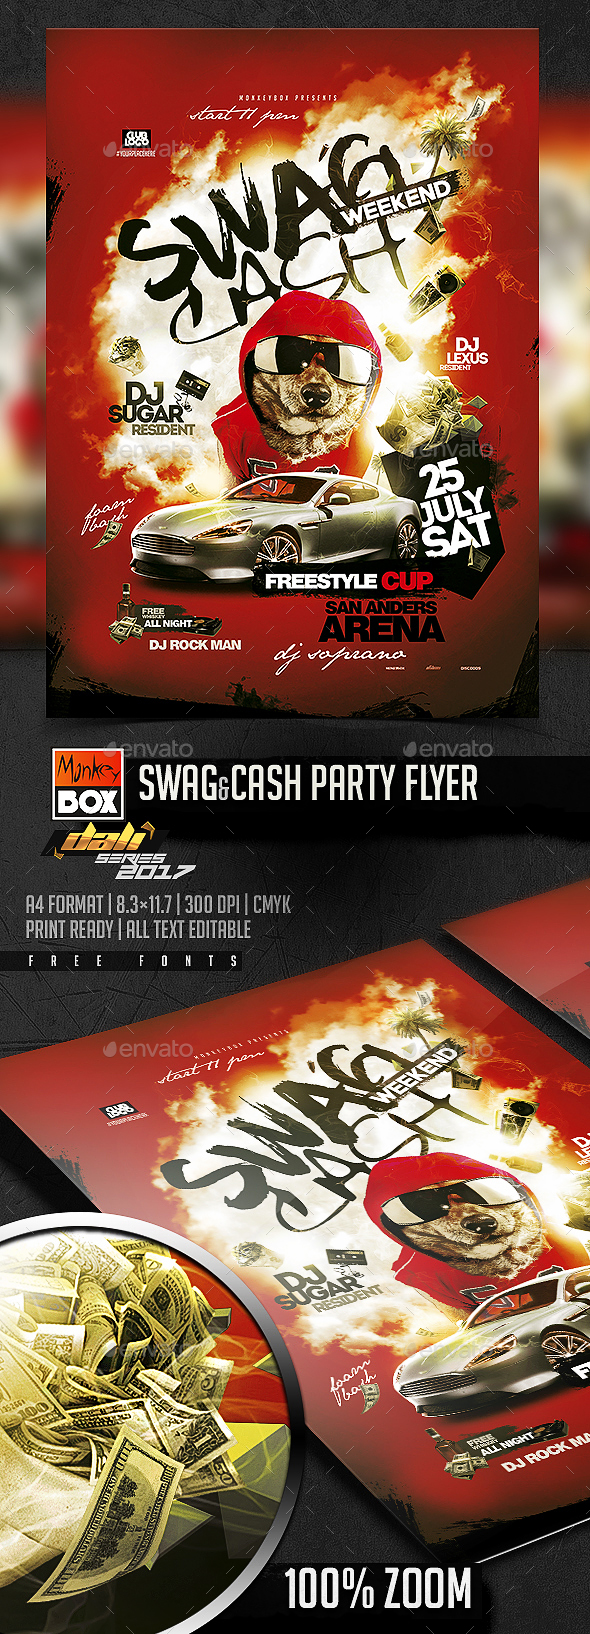 Swag&Cash Party Flyer - Flyers Print Templates